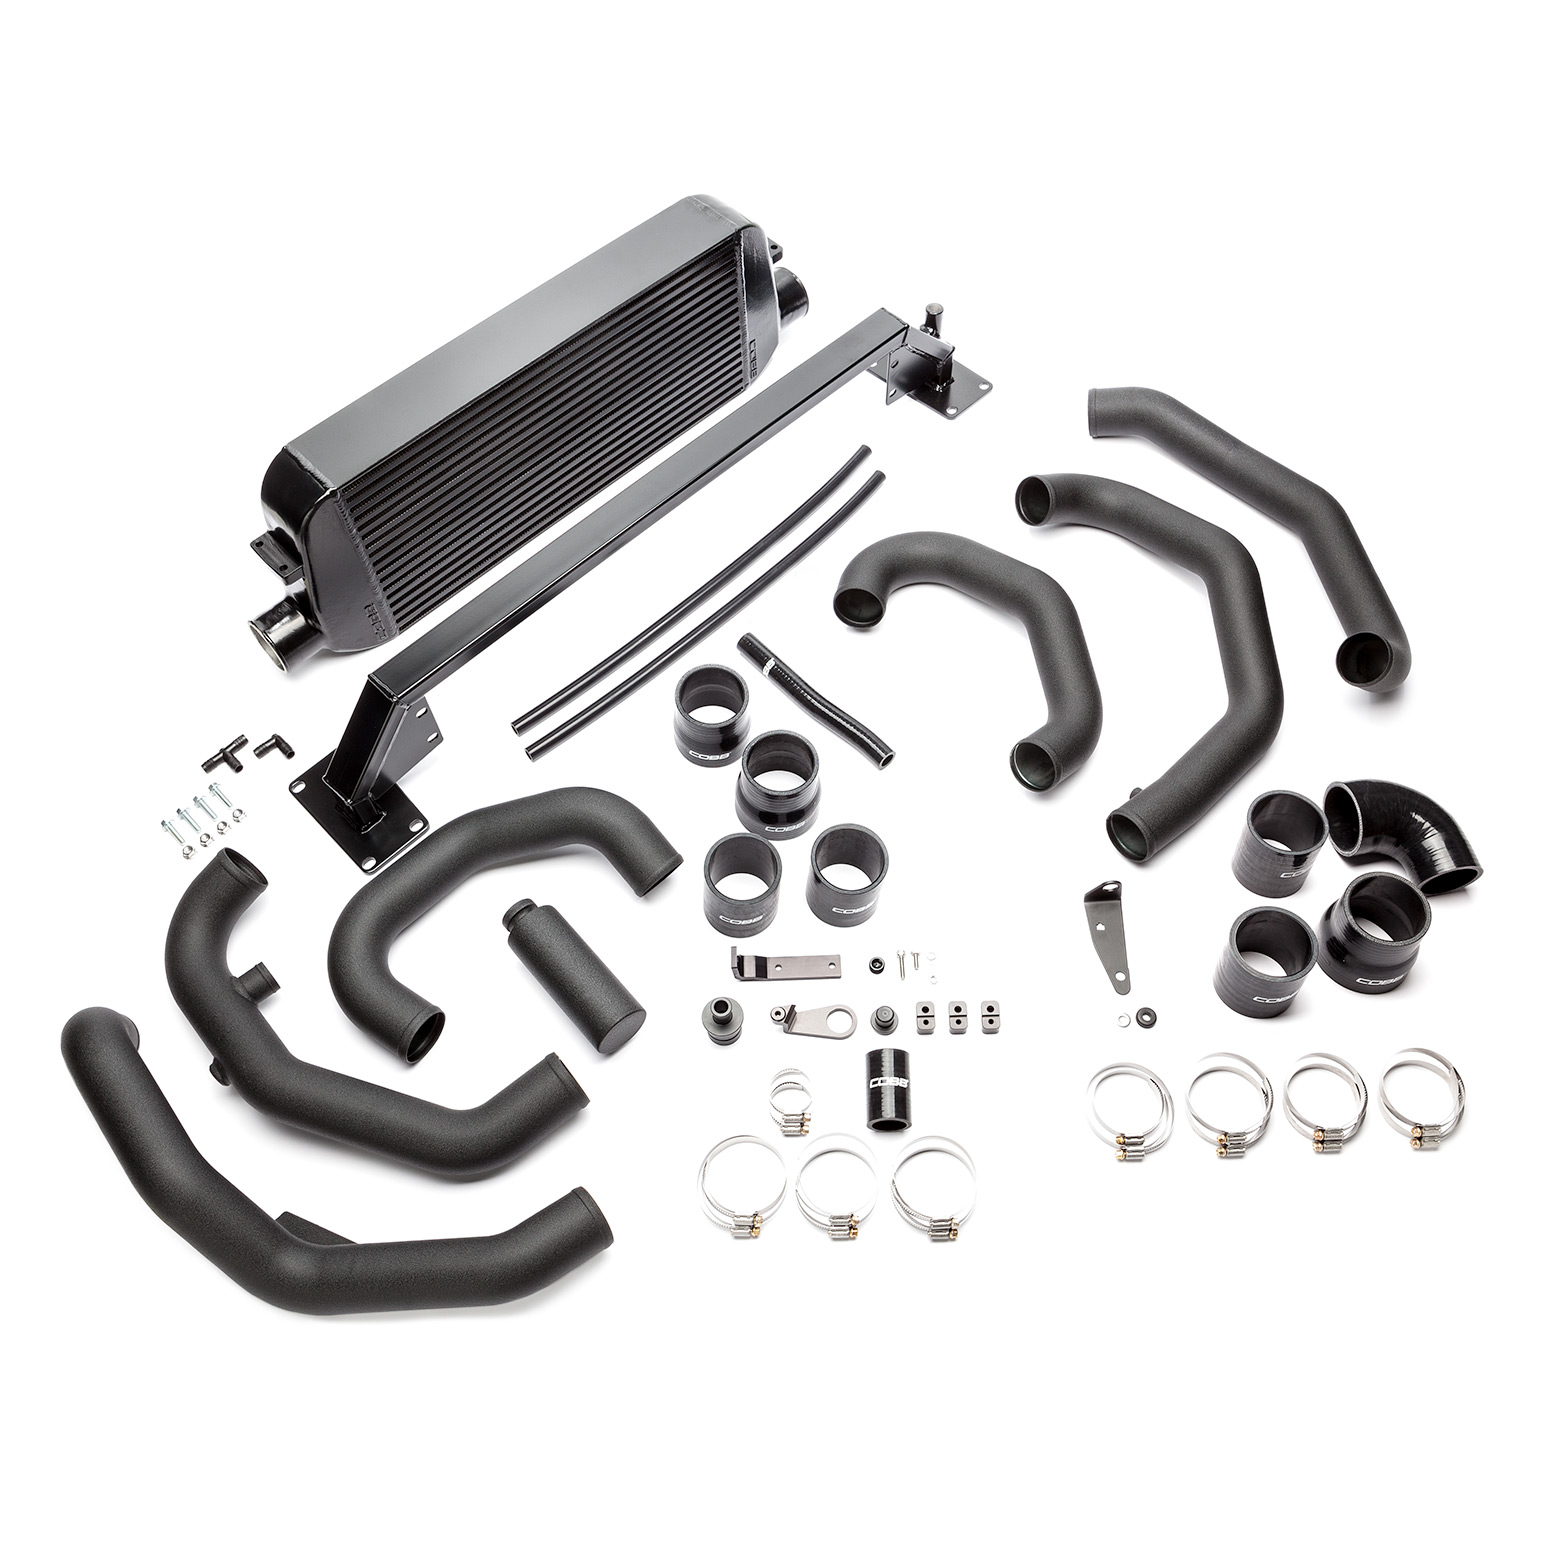 COBB TUNING SUBARU STI FRONT MOUNT INTERCOOLER KIT 2015-17 (SILVER/BLACK)